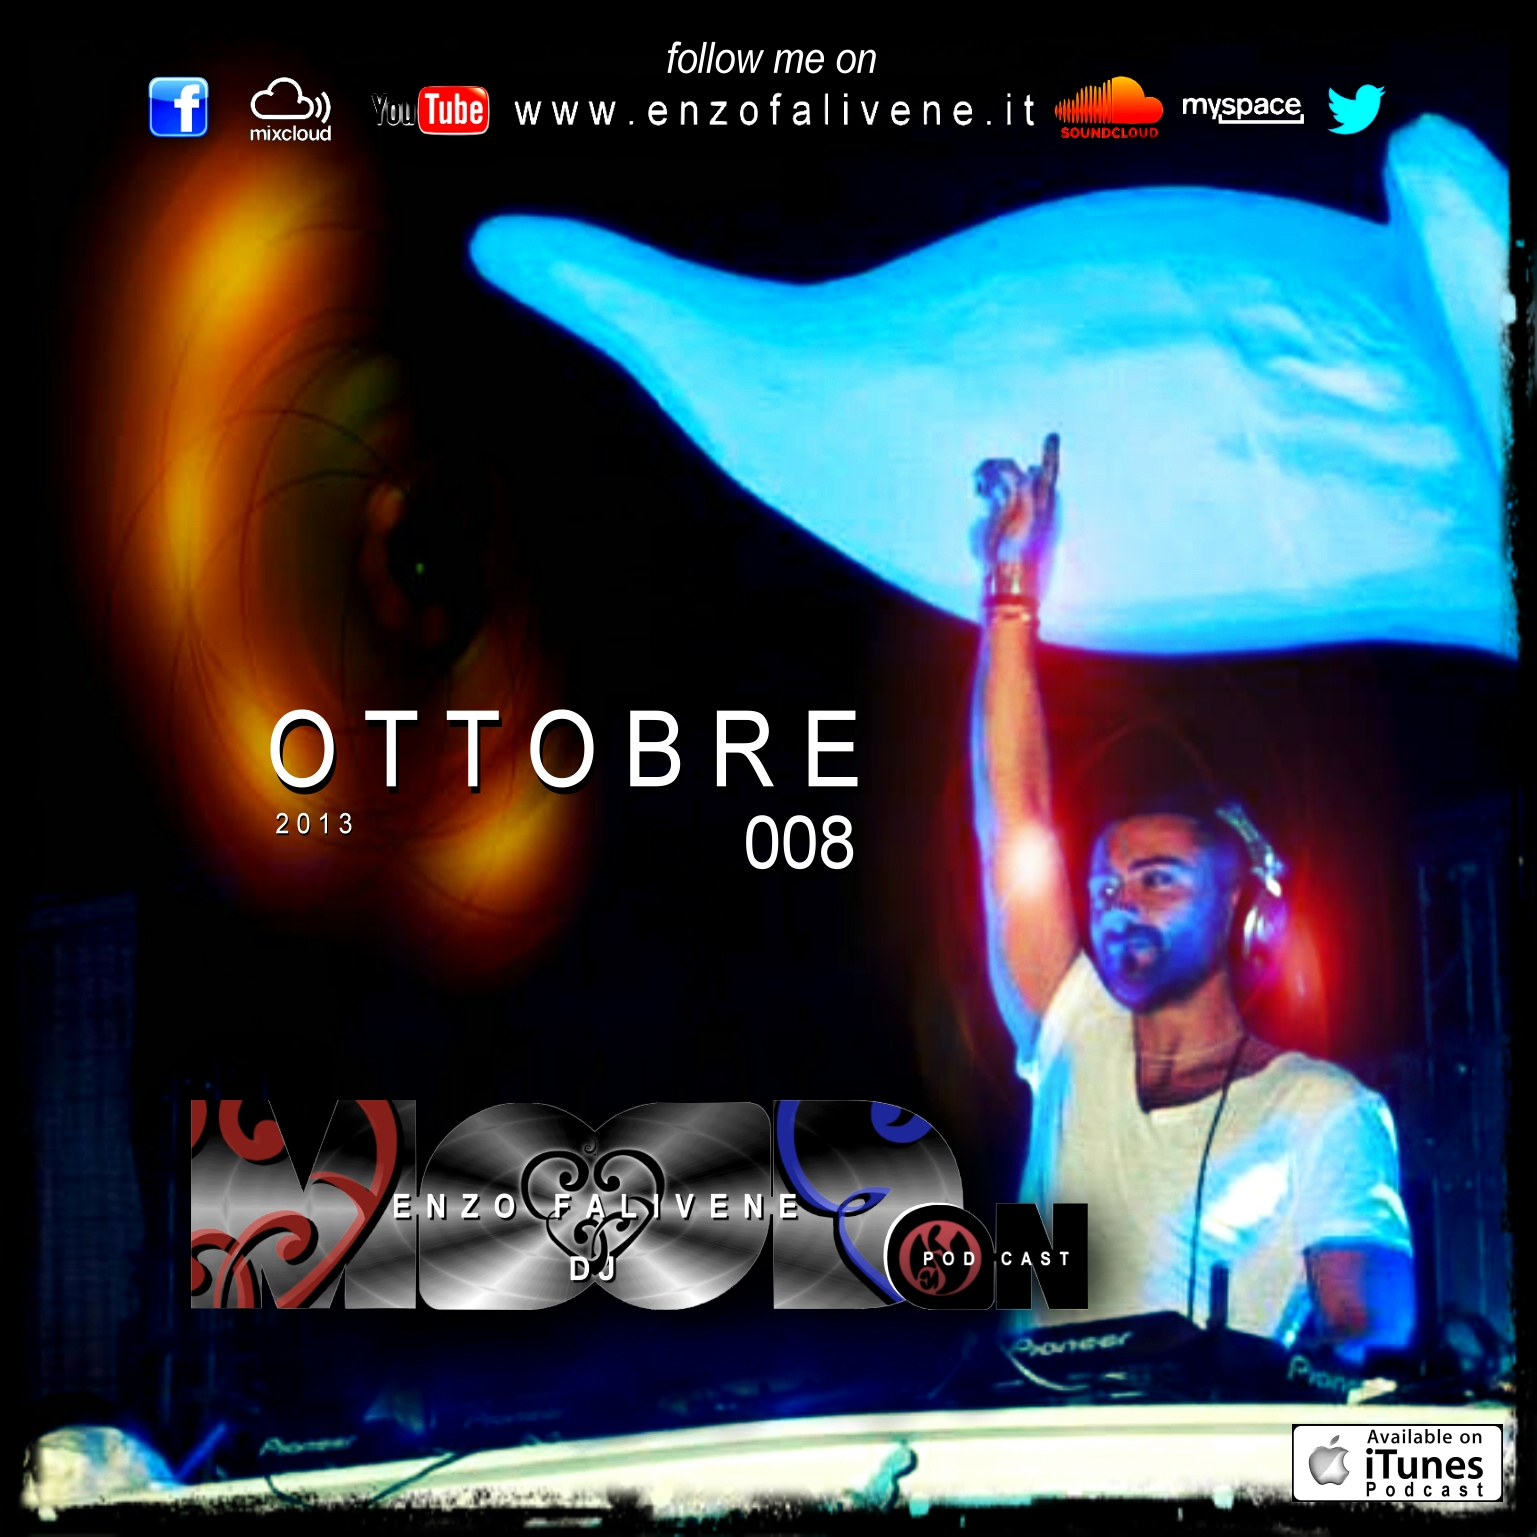 Dj Enzo Falivene - MOOD ON 008 Ottobre 2013